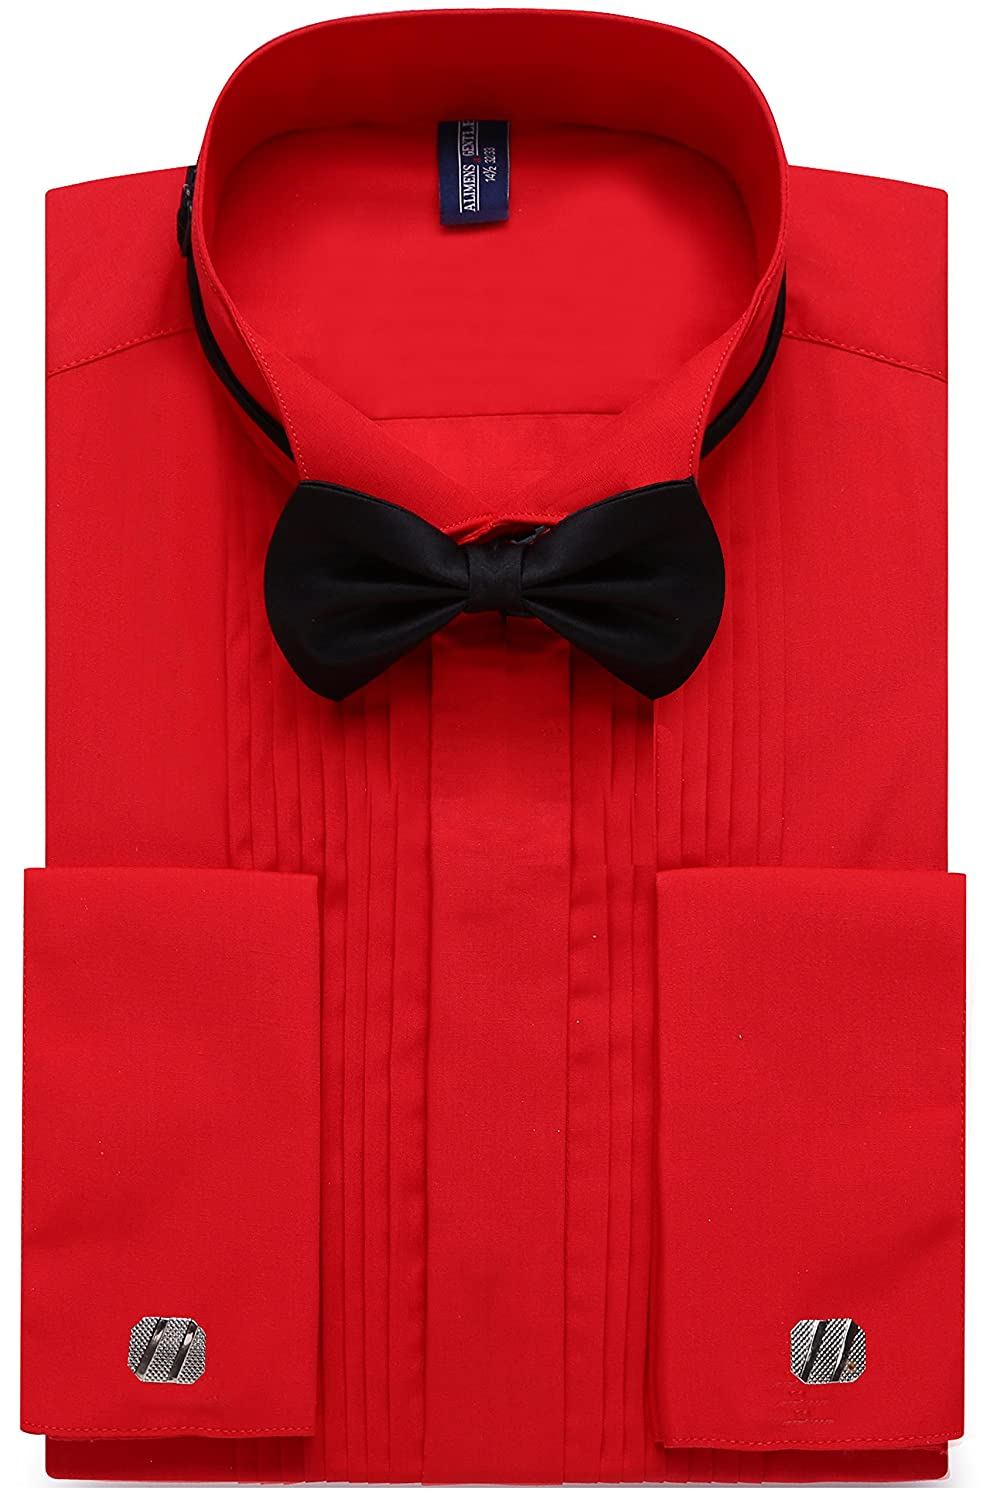 Alimens & Gentle Men's French Cuff Wing Collar Tuxedo Shirts Regular Fit ALM-M-FR-TUX-WING-1